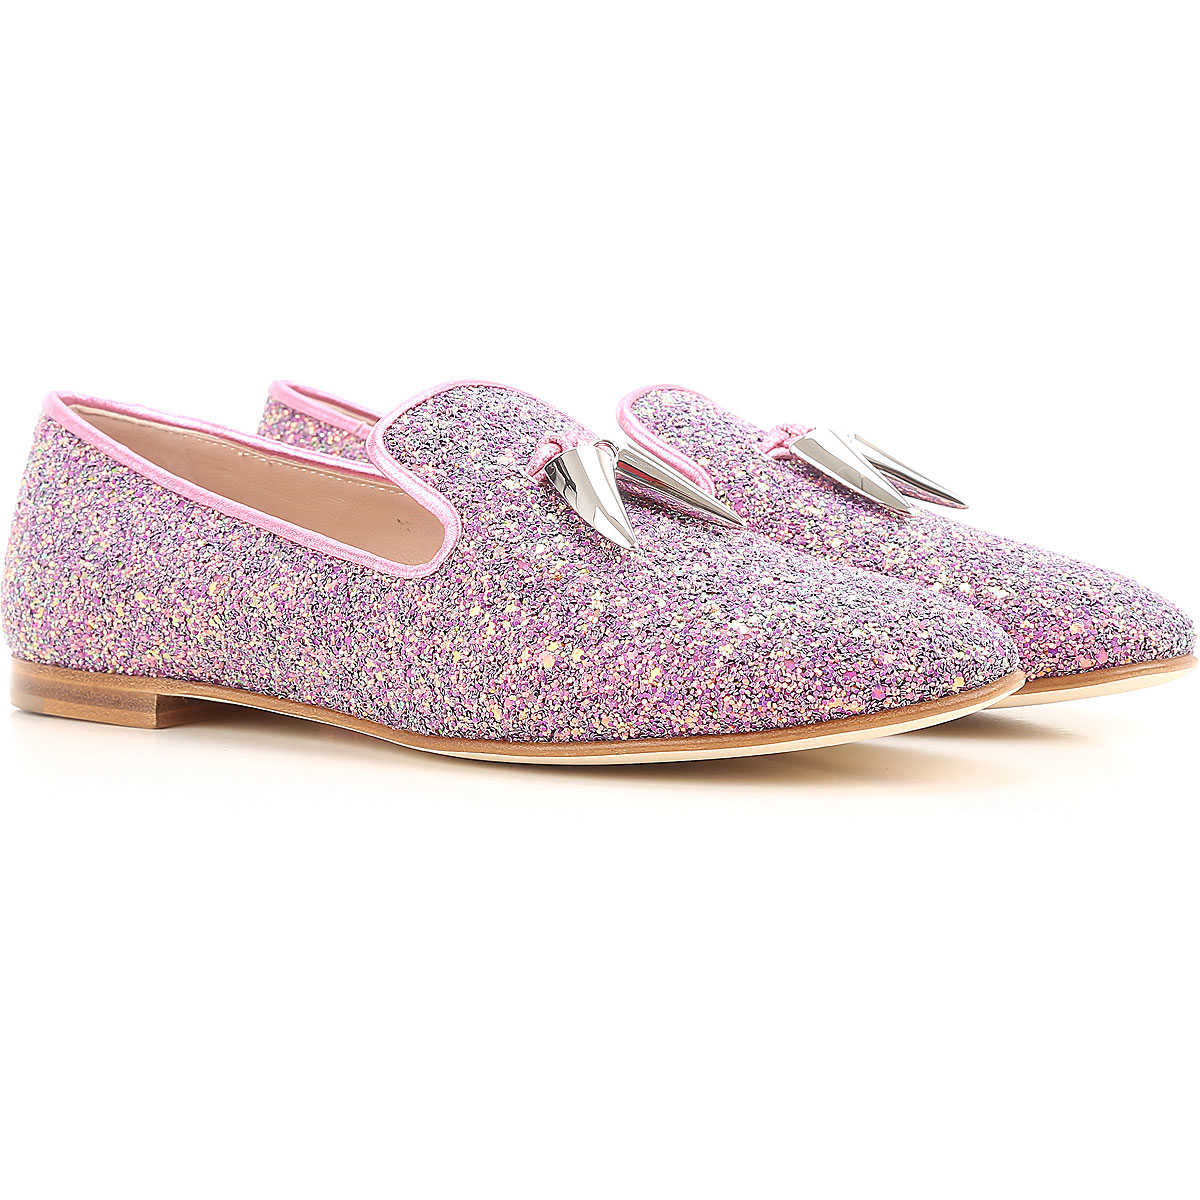 Giuseppe Zanotti Design Loafers for Women On Sale in Outlet